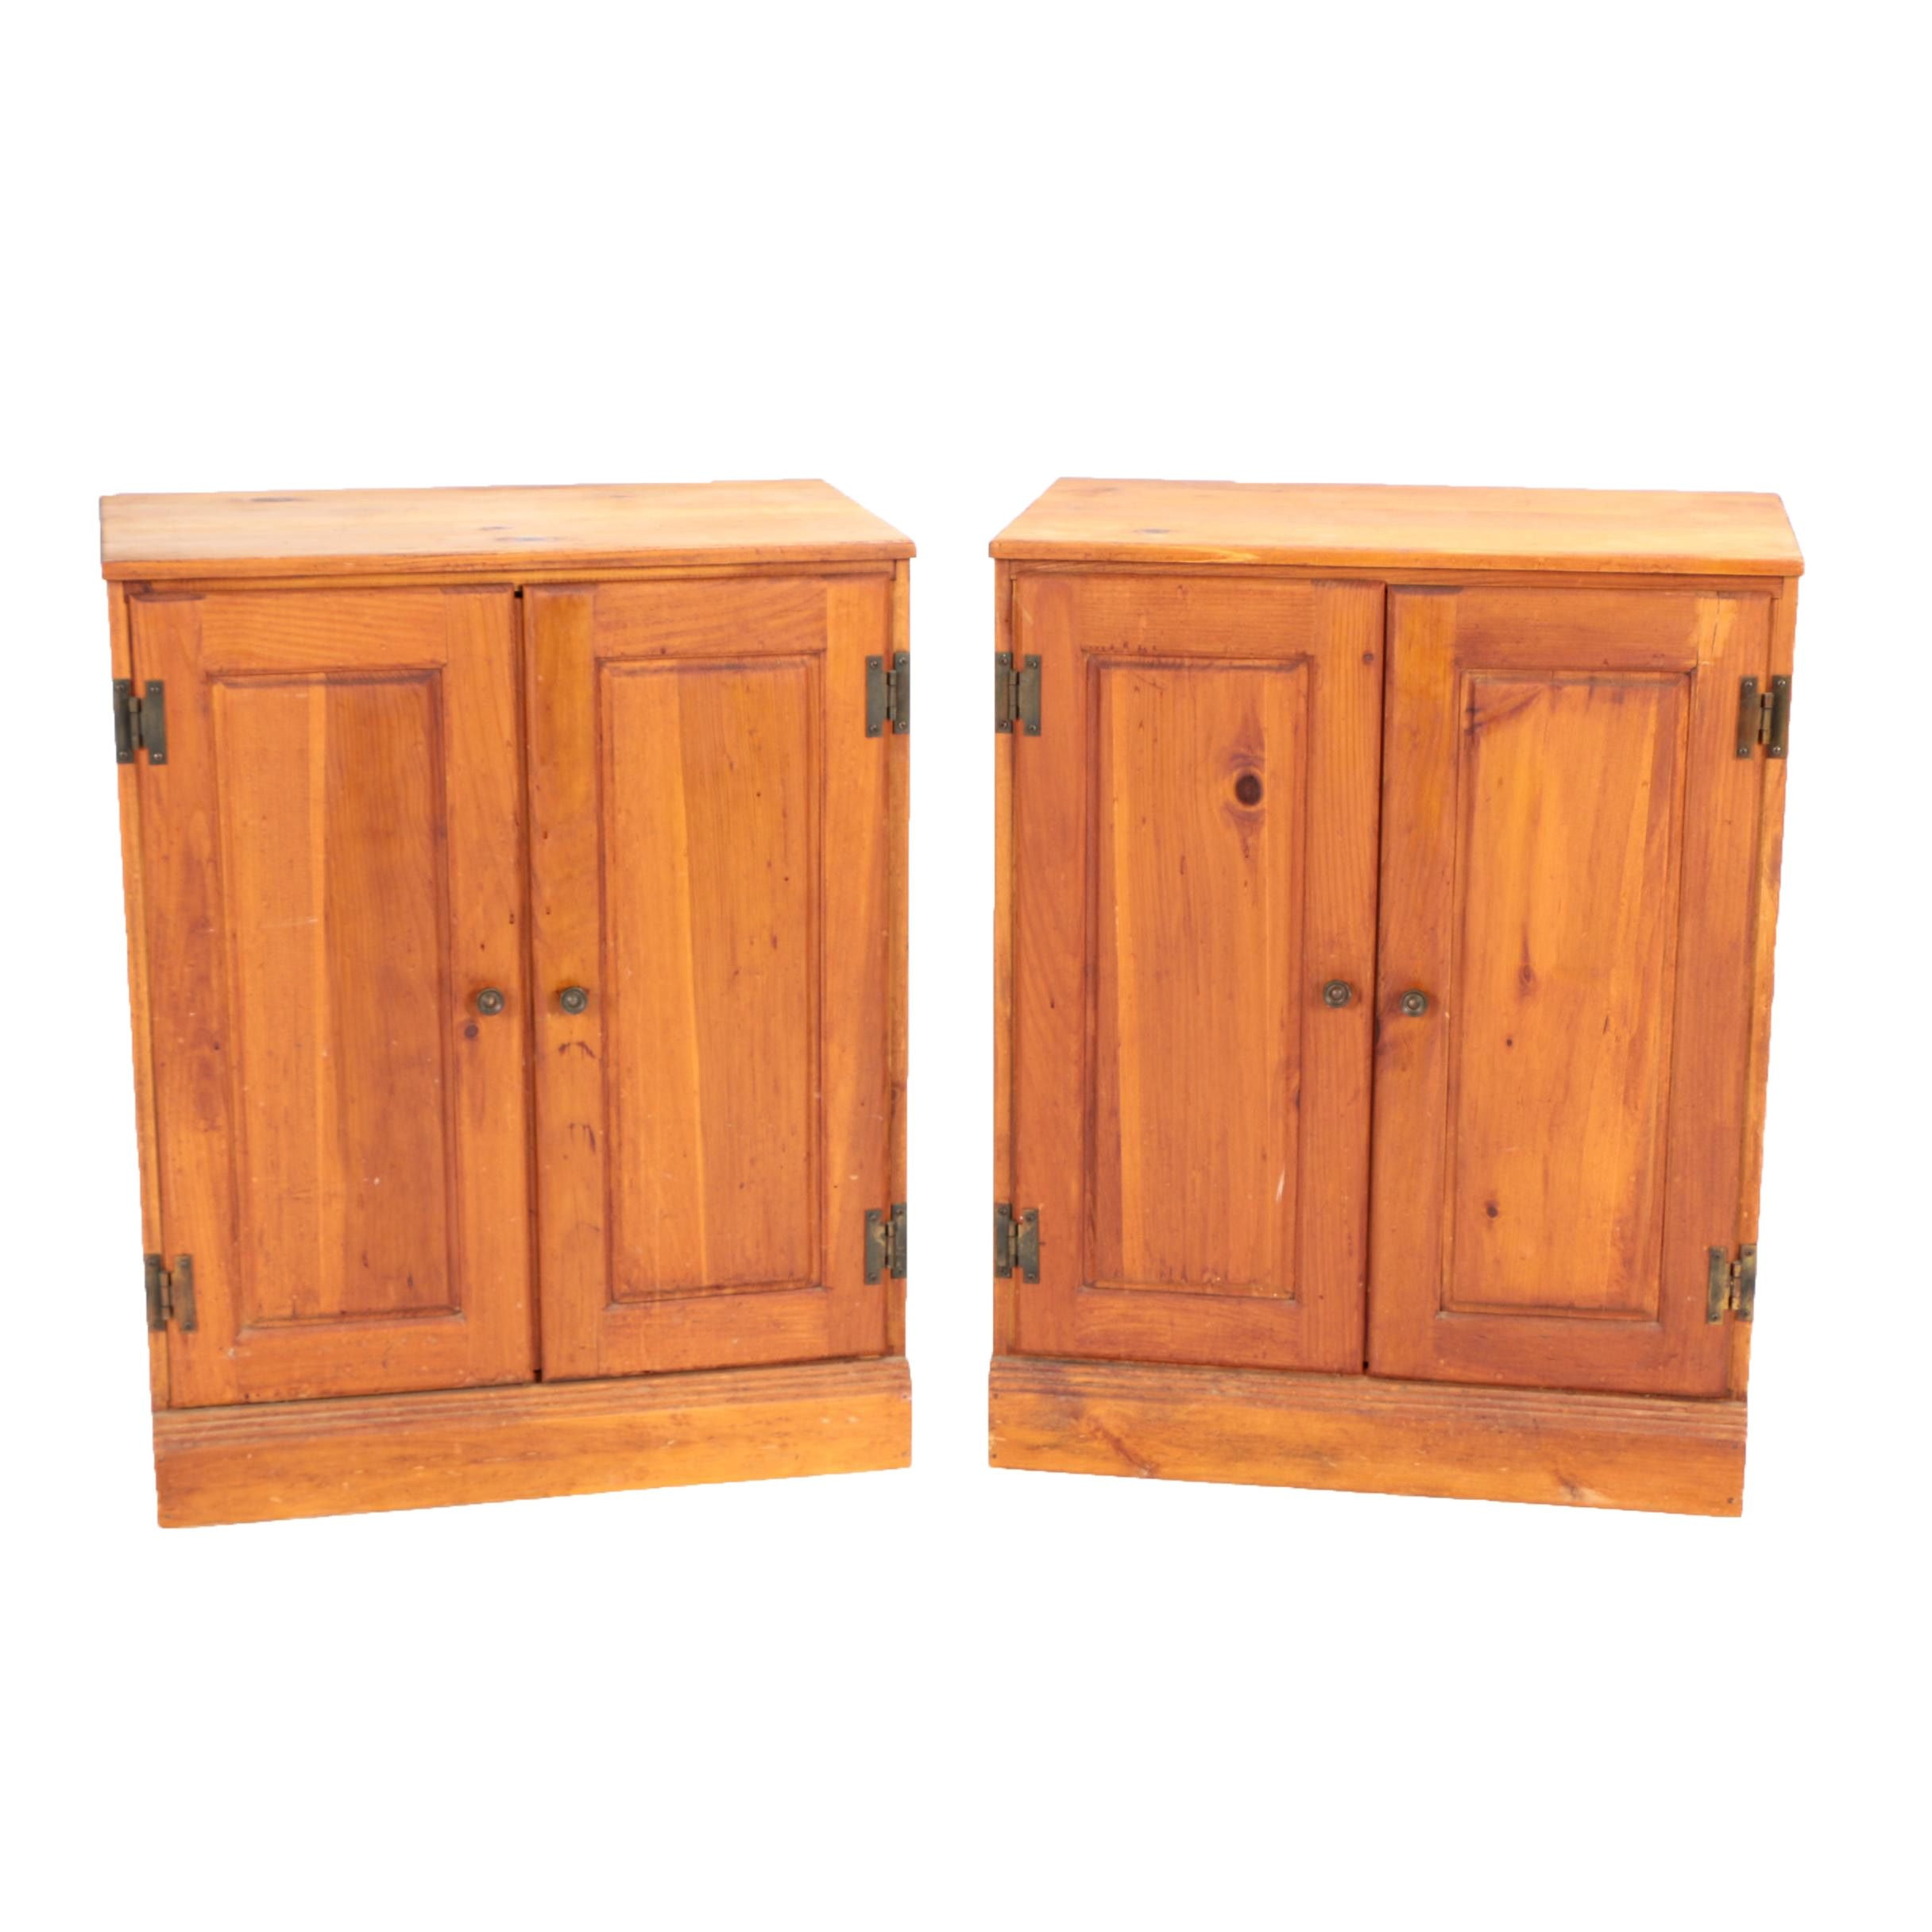 Pair of Vintage Wooden Cabinets